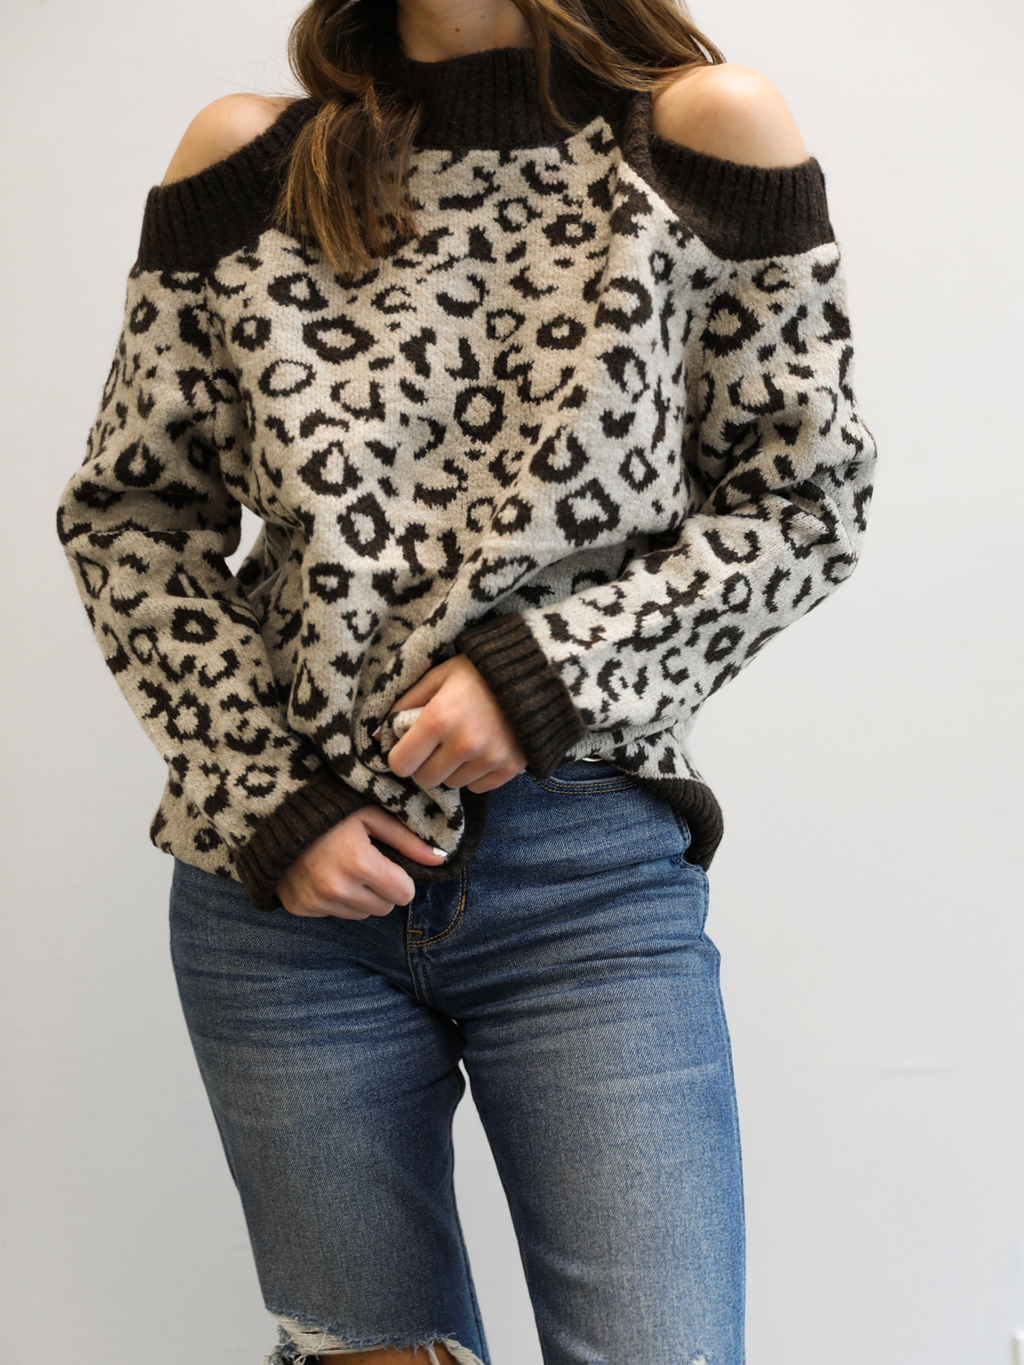 By My Side Leopard Sweater - Stitch And Feather